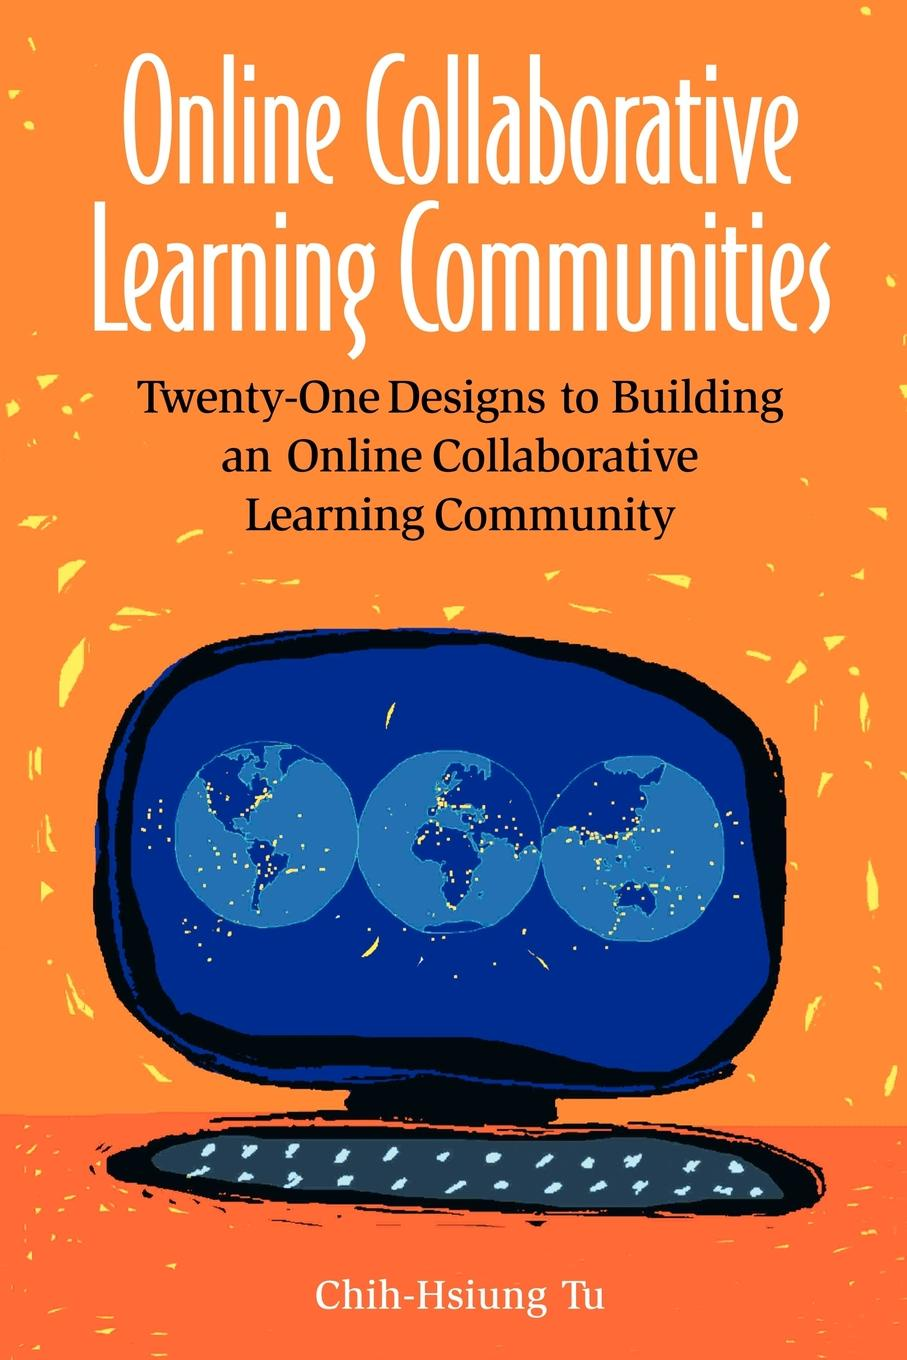 Chih-Hsiung Tu Online Collaborative Learning Communities. Twenty-One Designs to Building an Online Collaborative Learning Community building non profit communities online